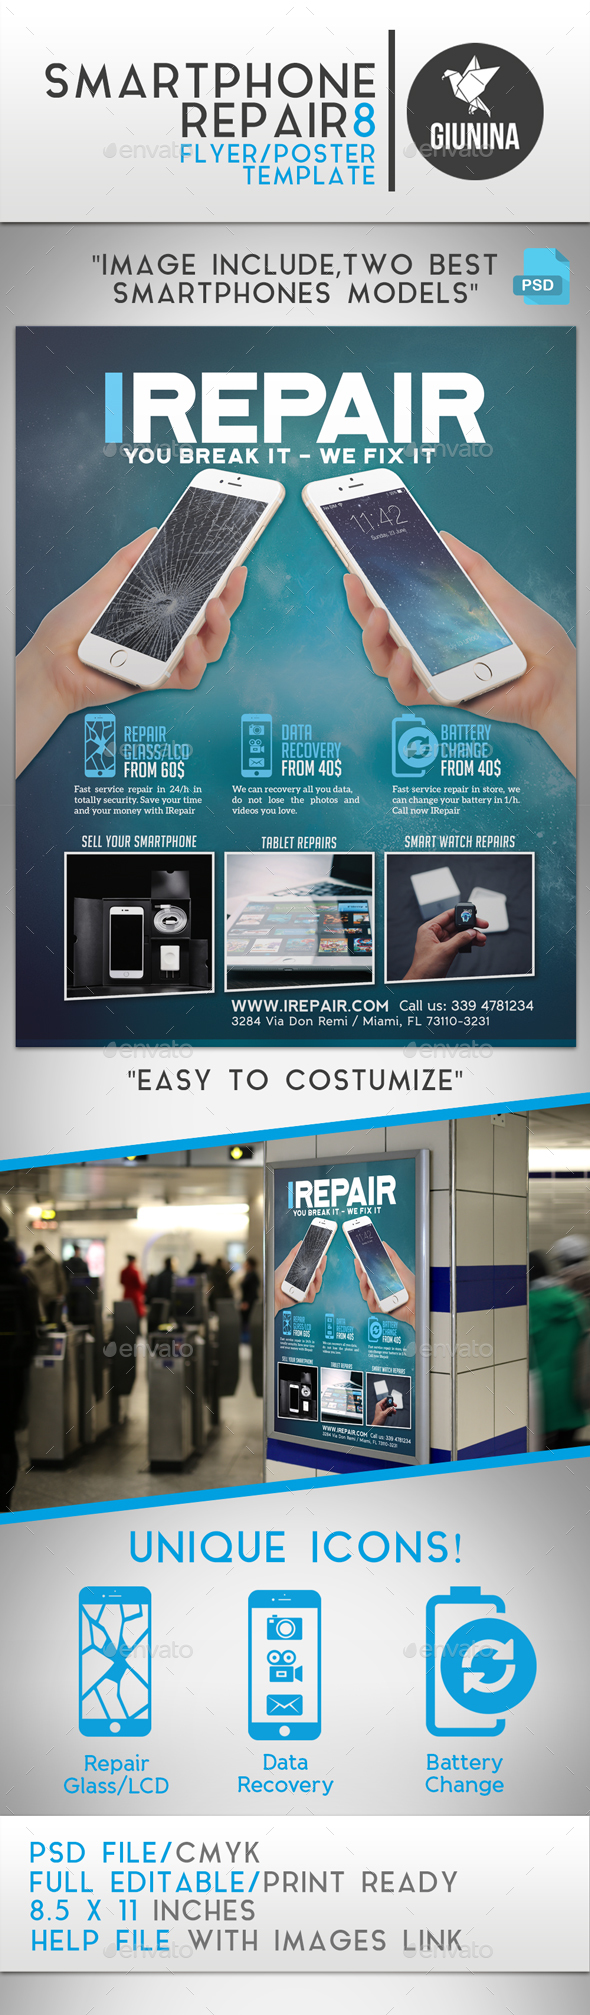 Smartphone Repair 8 Flyer/Poster - Commerce Flyers